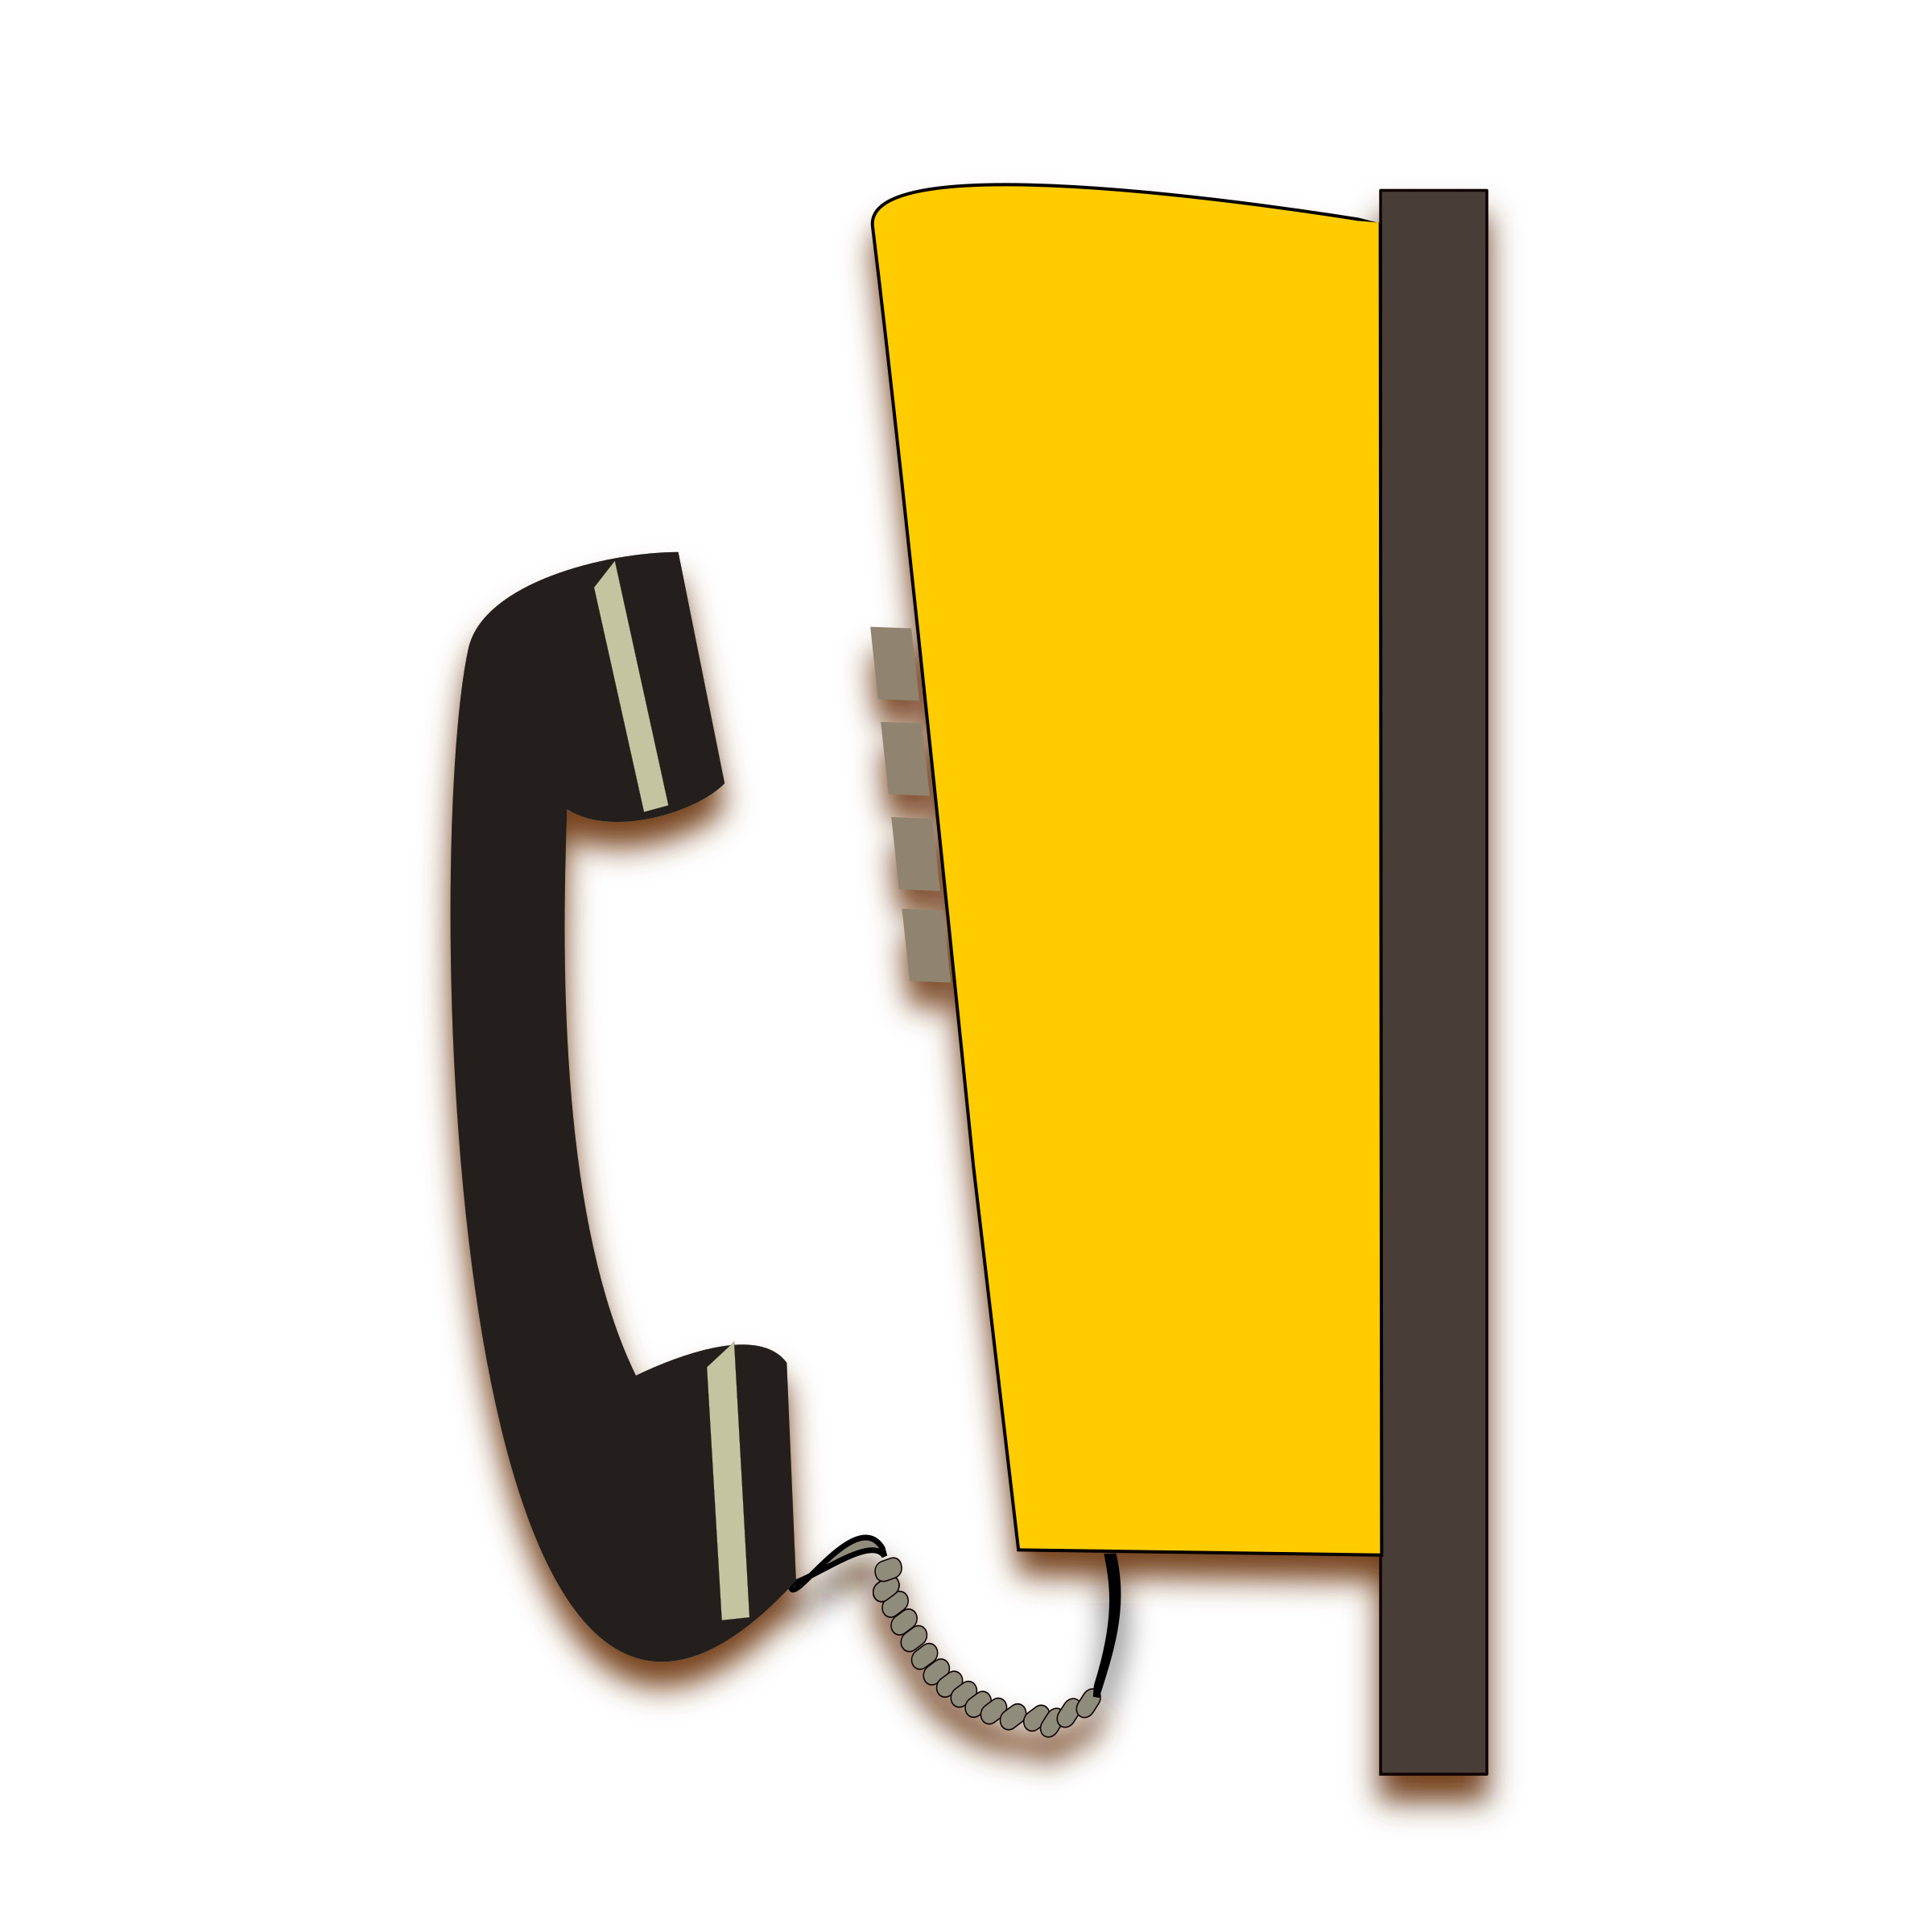 Telephone clipart sign. Public big image png